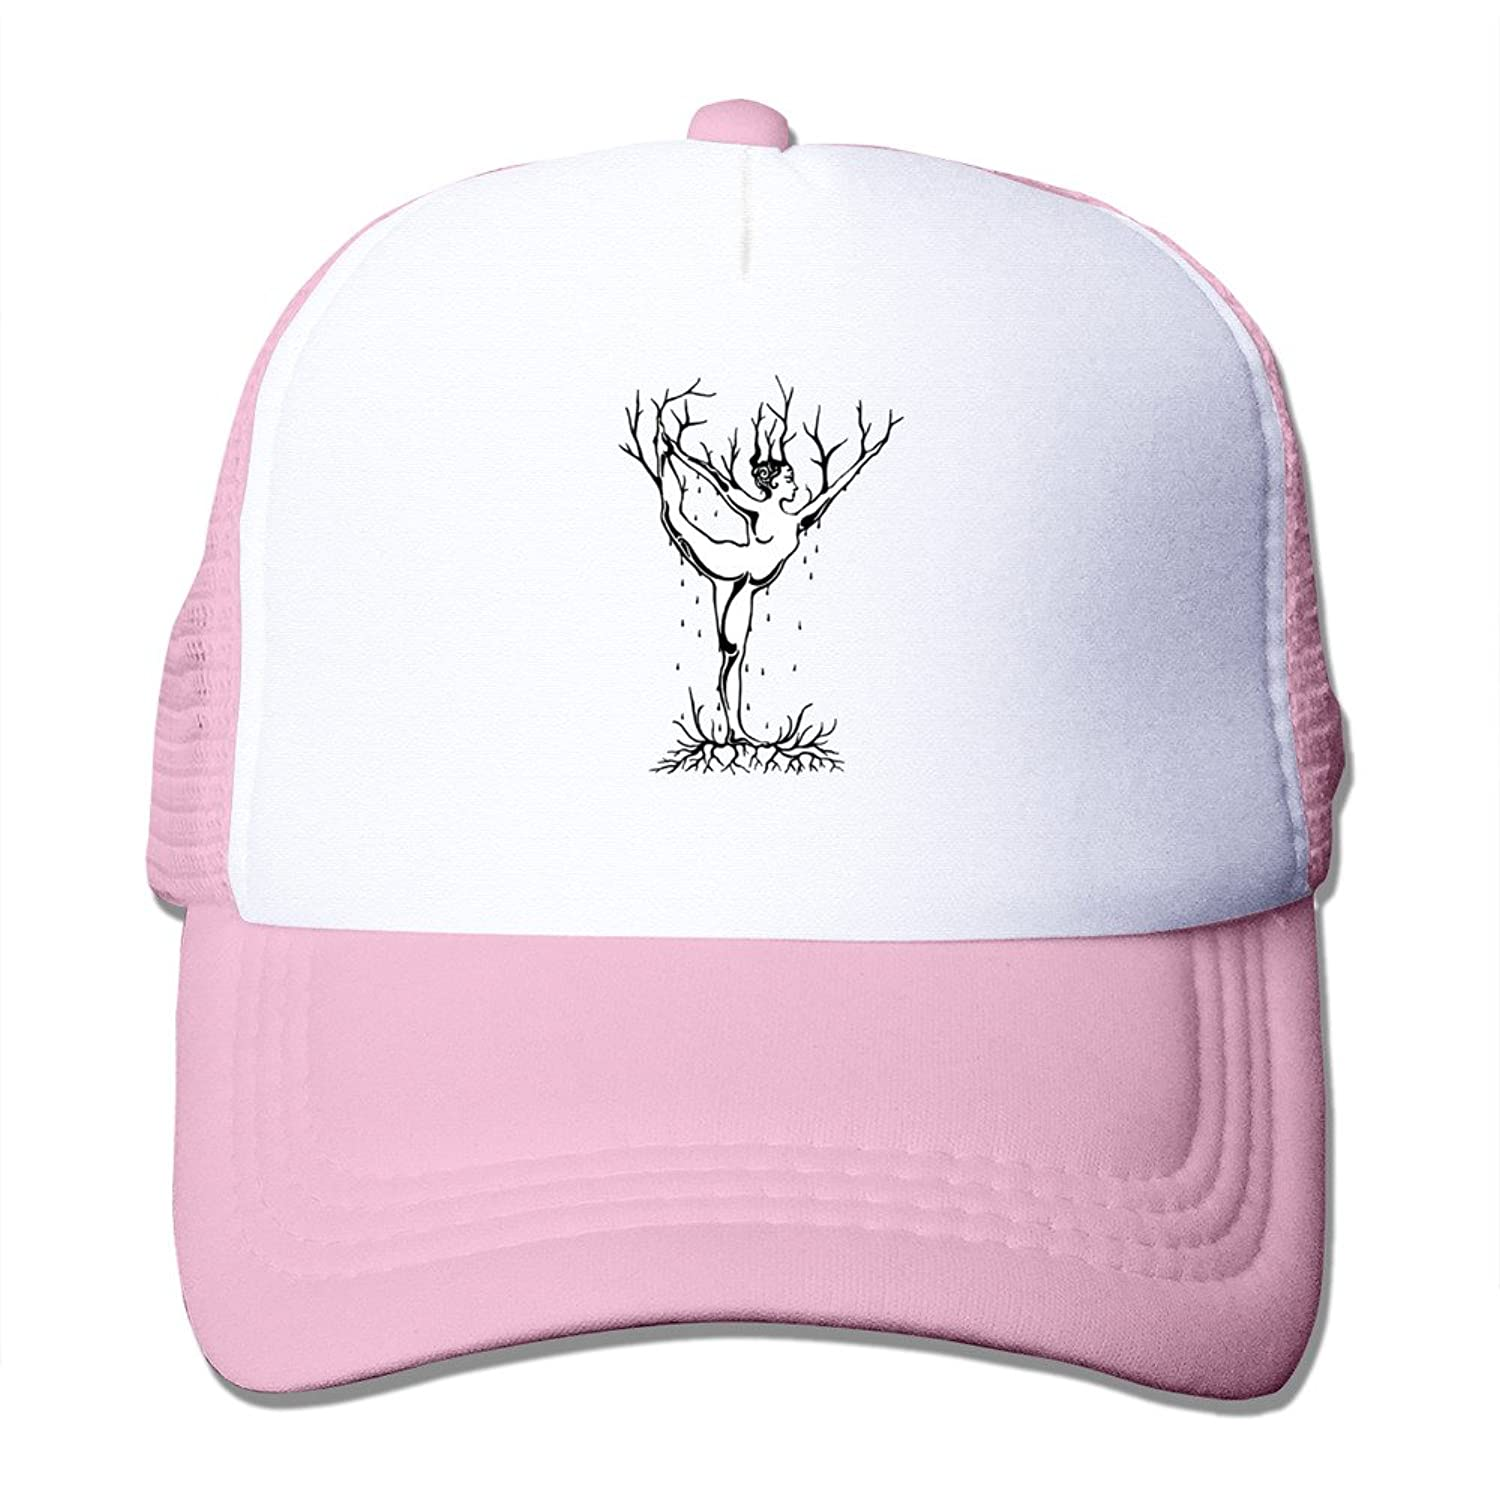 Bro-Custom Yoga Tree Woman Abstract Graphic Sunbonnet Hat Caps One Size Fit All Pink